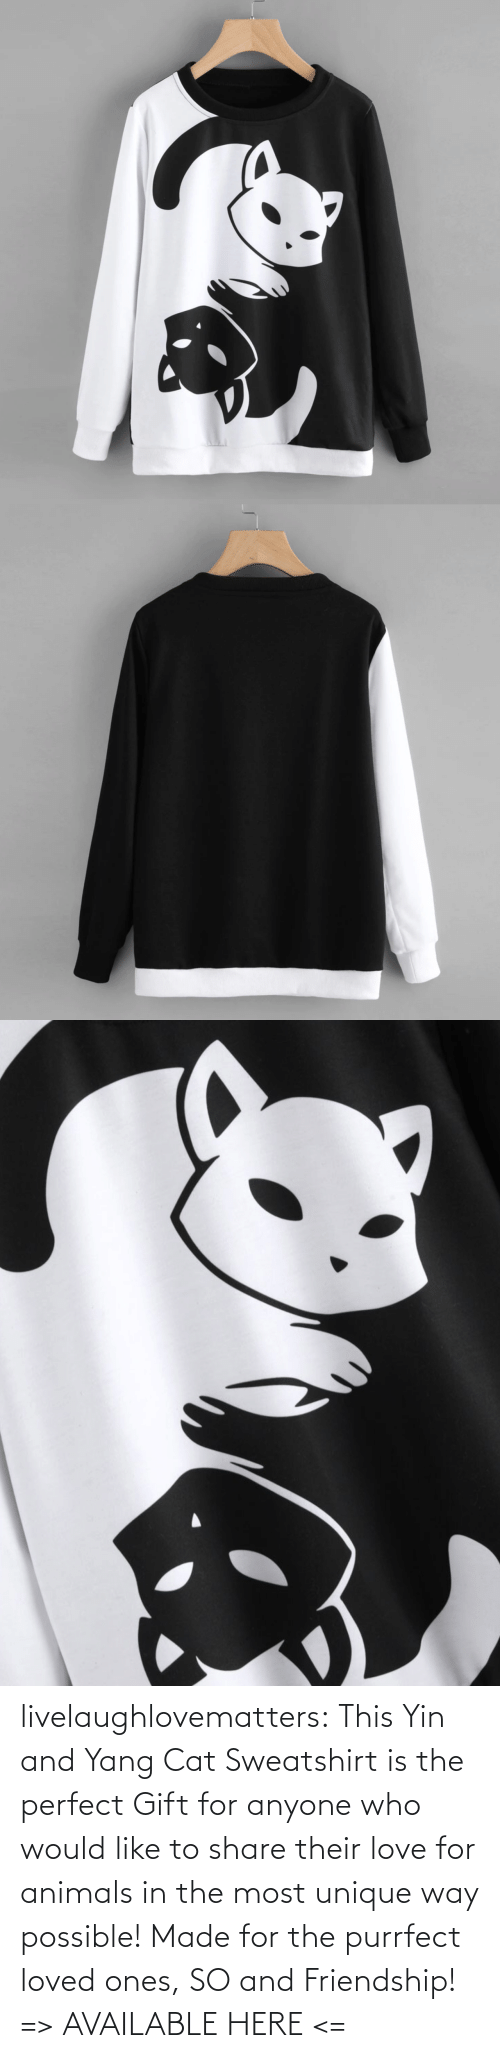 Animals, Love, and Tumblr: livelaughlovematters:  This Yin and Yang Cat Sweatshirt is the perfect Gift for anyone who would like to share their love for animals in the most unique way possible! Made for the purrfect loved ones, SO and Friendship!  => AVAILABLE HERE <=